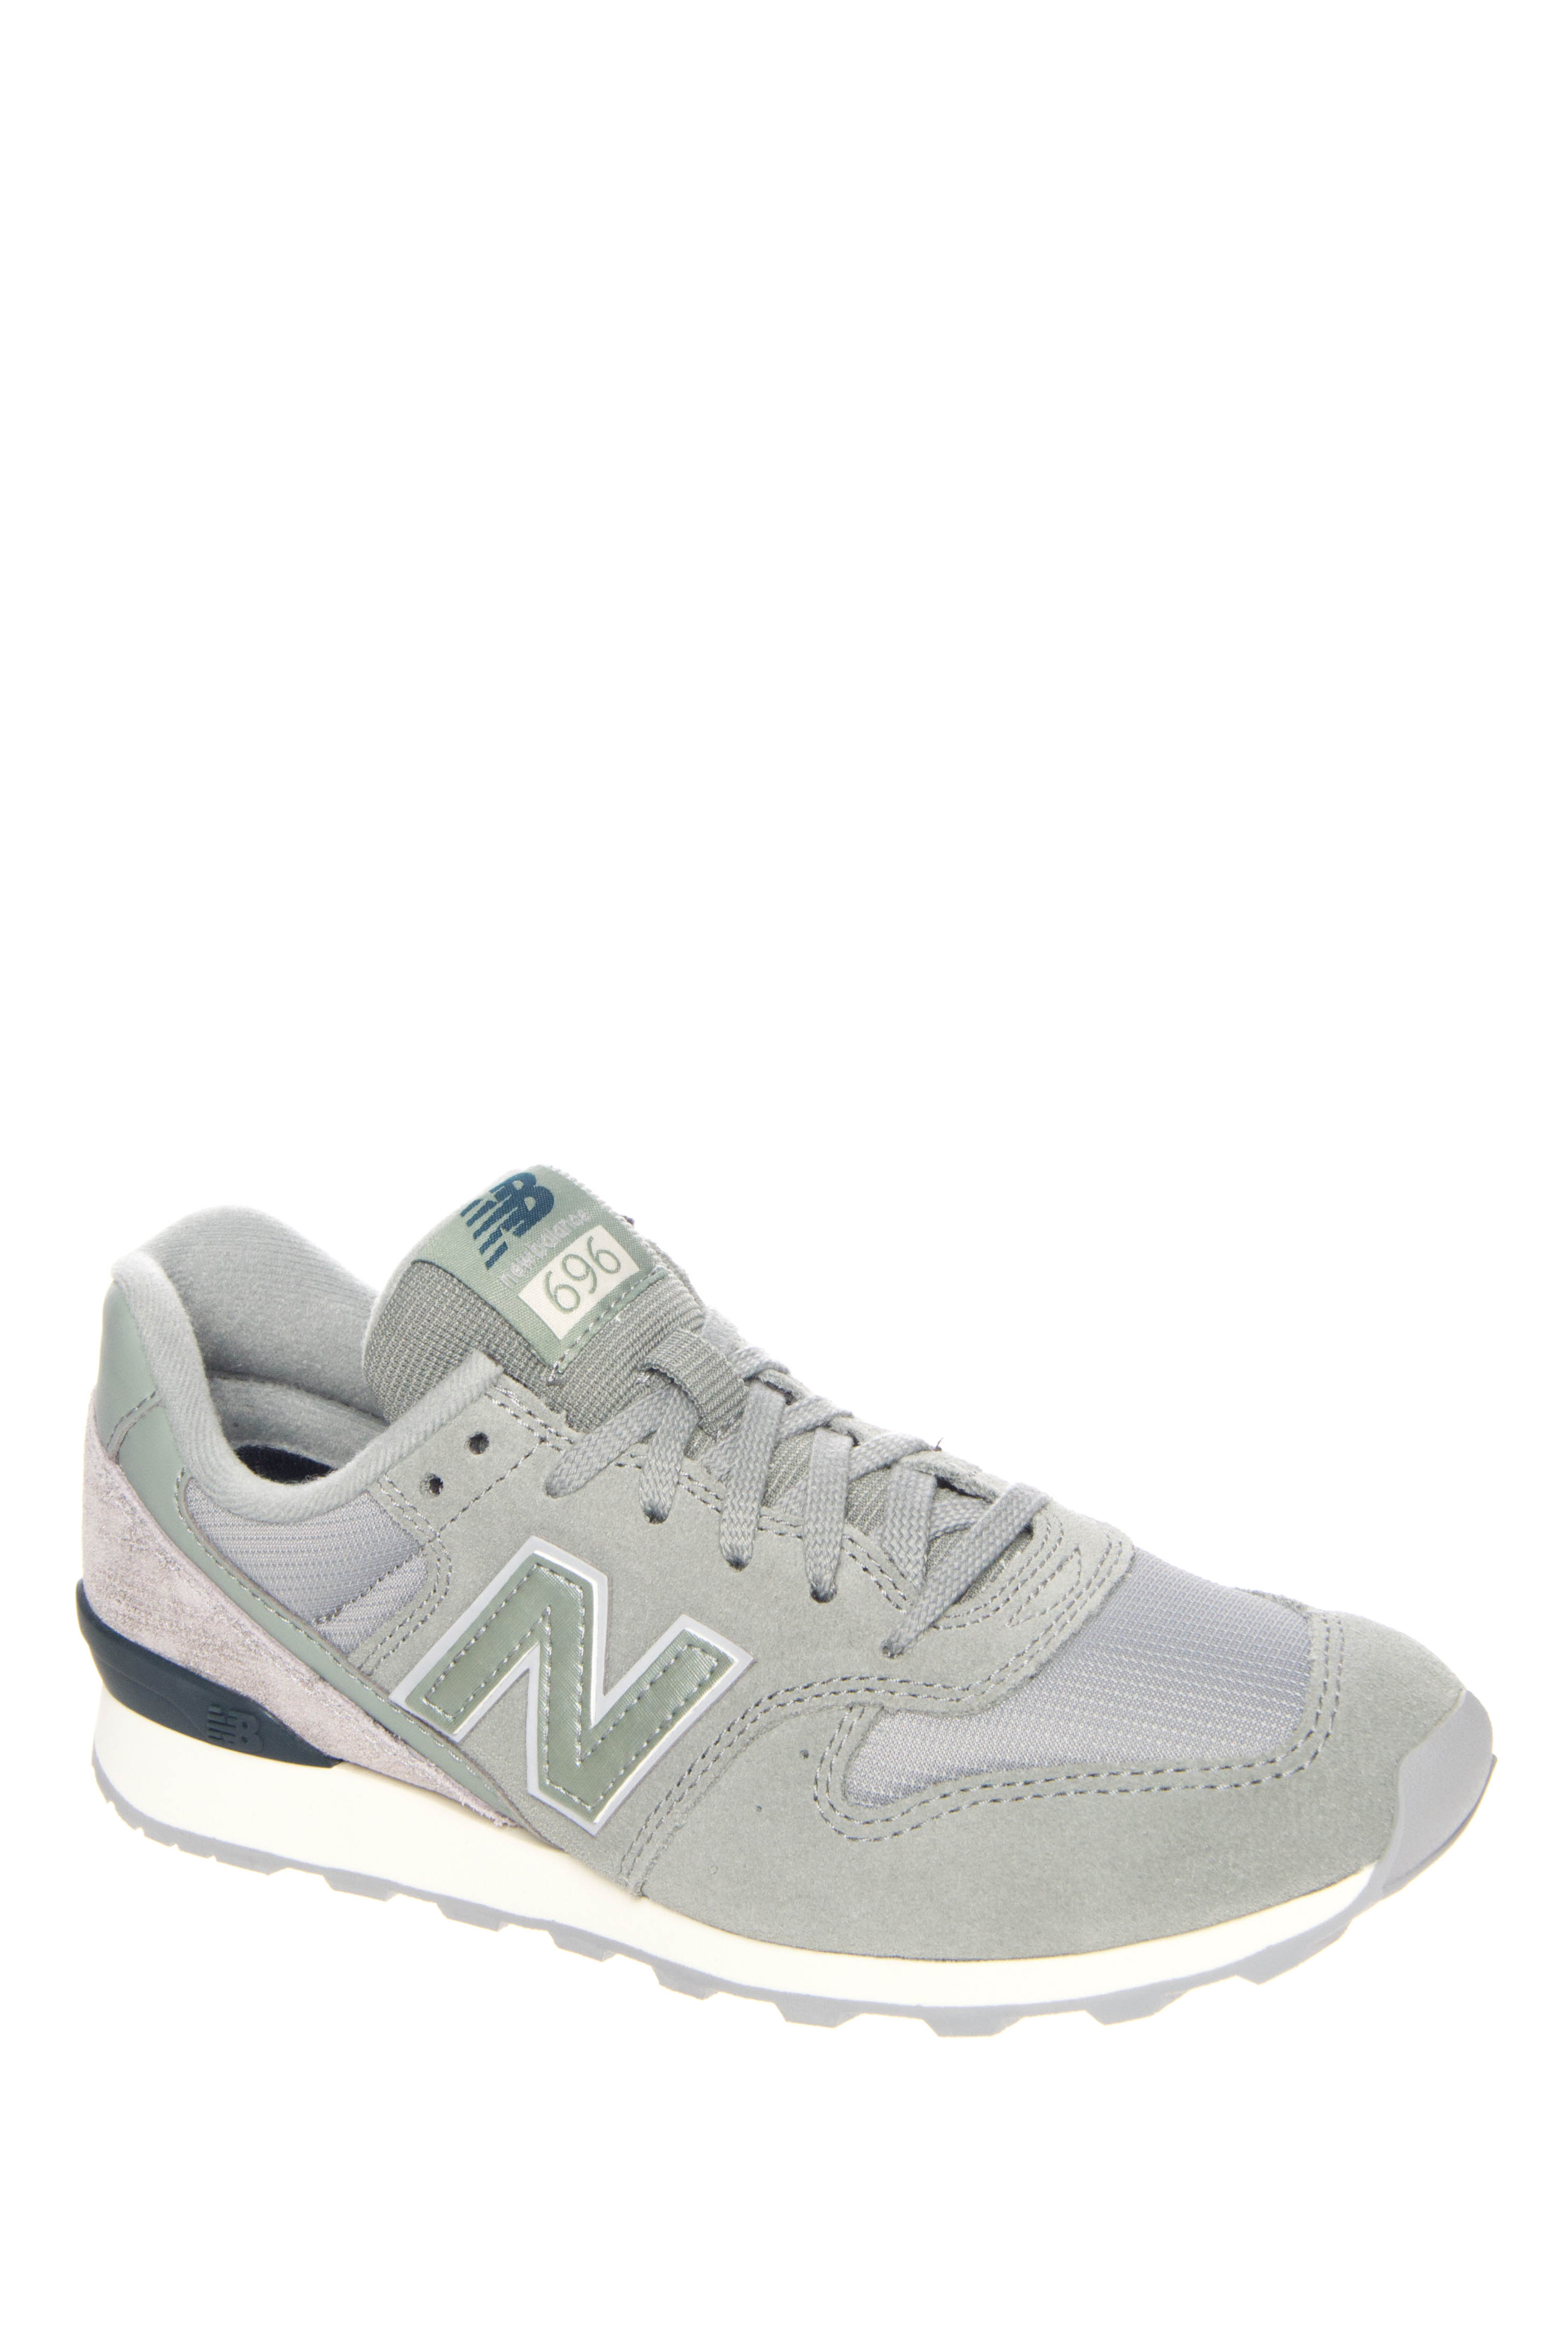 New Balance 696 Capsule Low Top Sneakers - Silver Mink / Lush / Seed